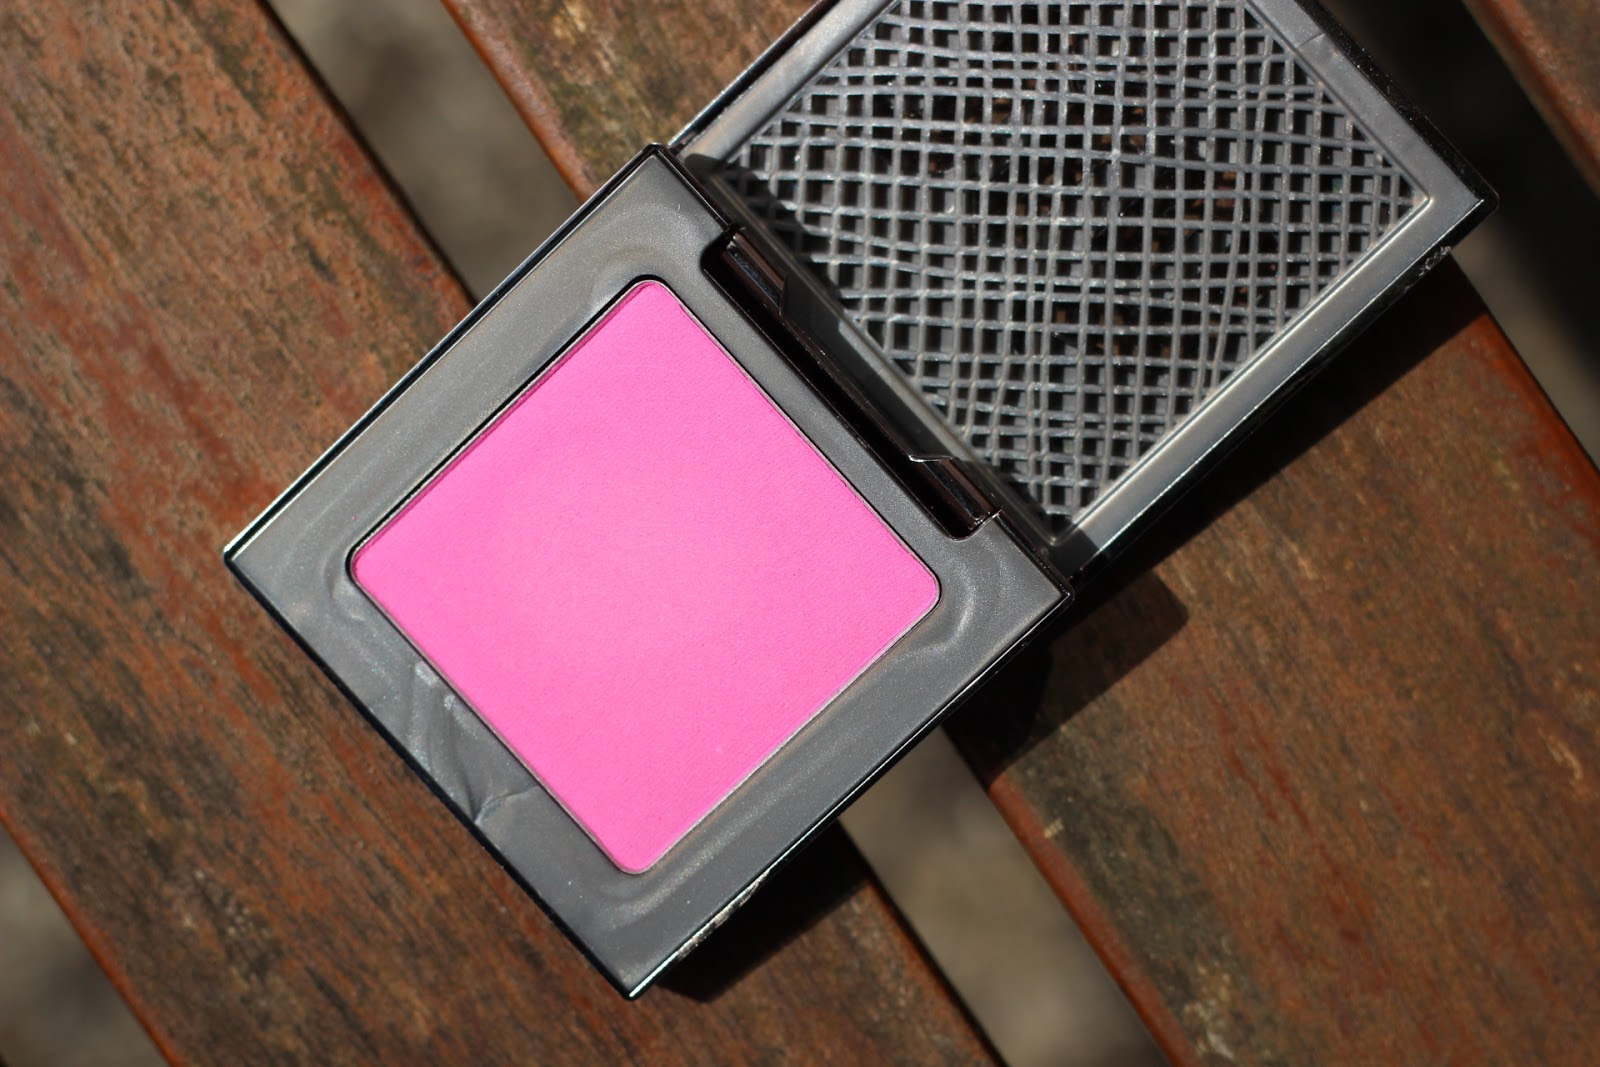 Urban Decay Afterglow 8 Hour Powder Blush Quickie Swatch